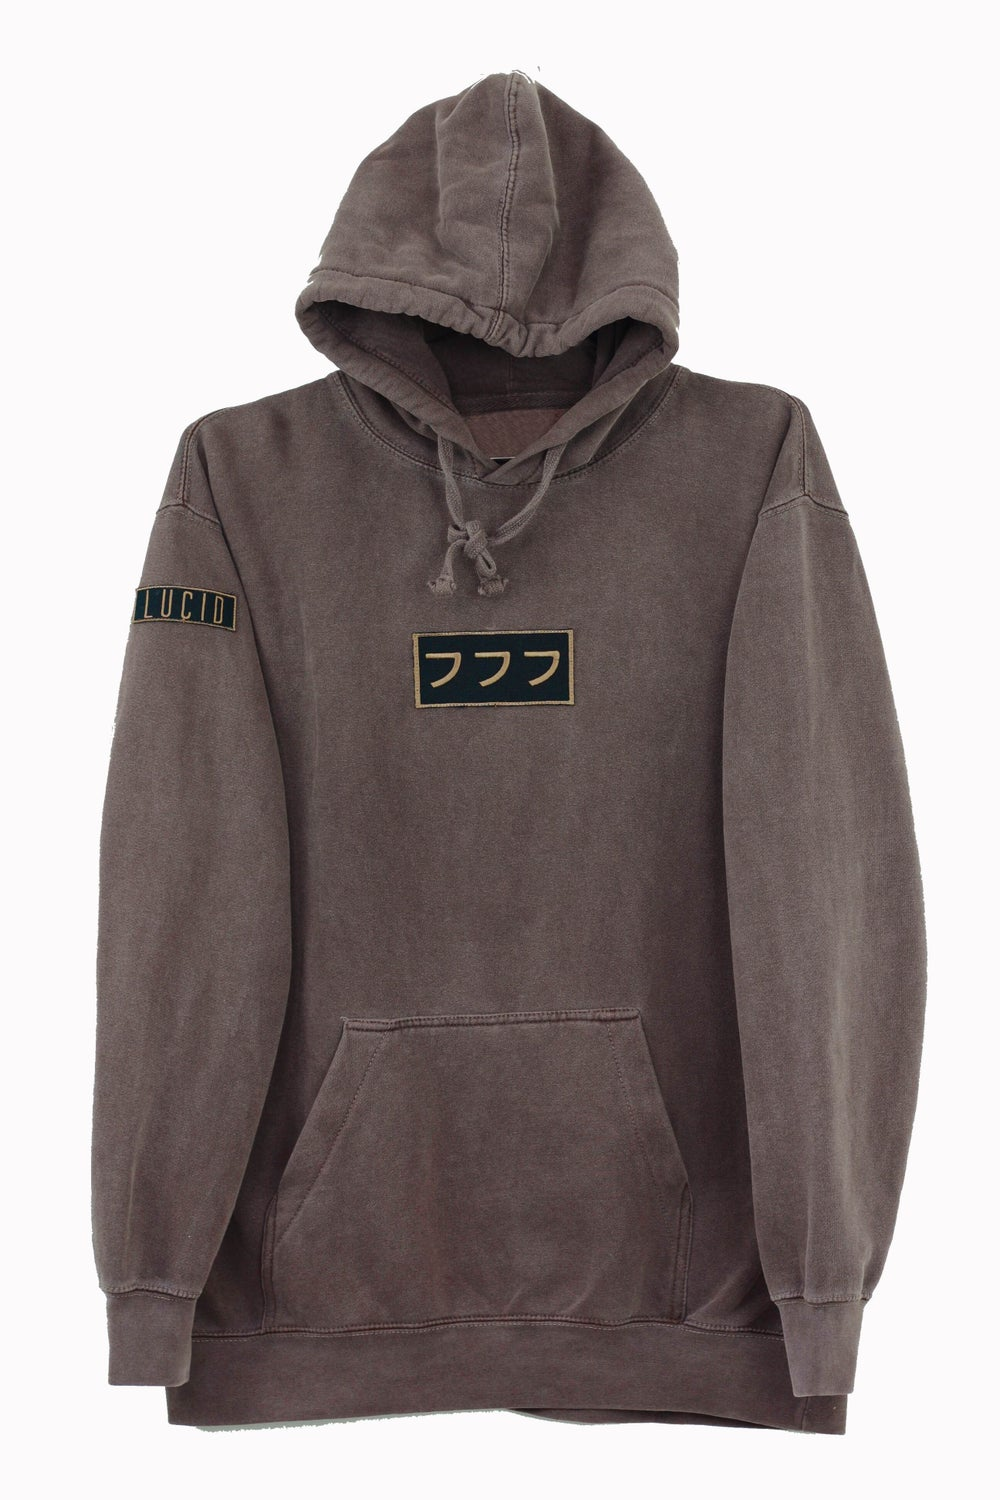 Image of LUCID LOGO HOODIE VOL. II - CHOCOLATE